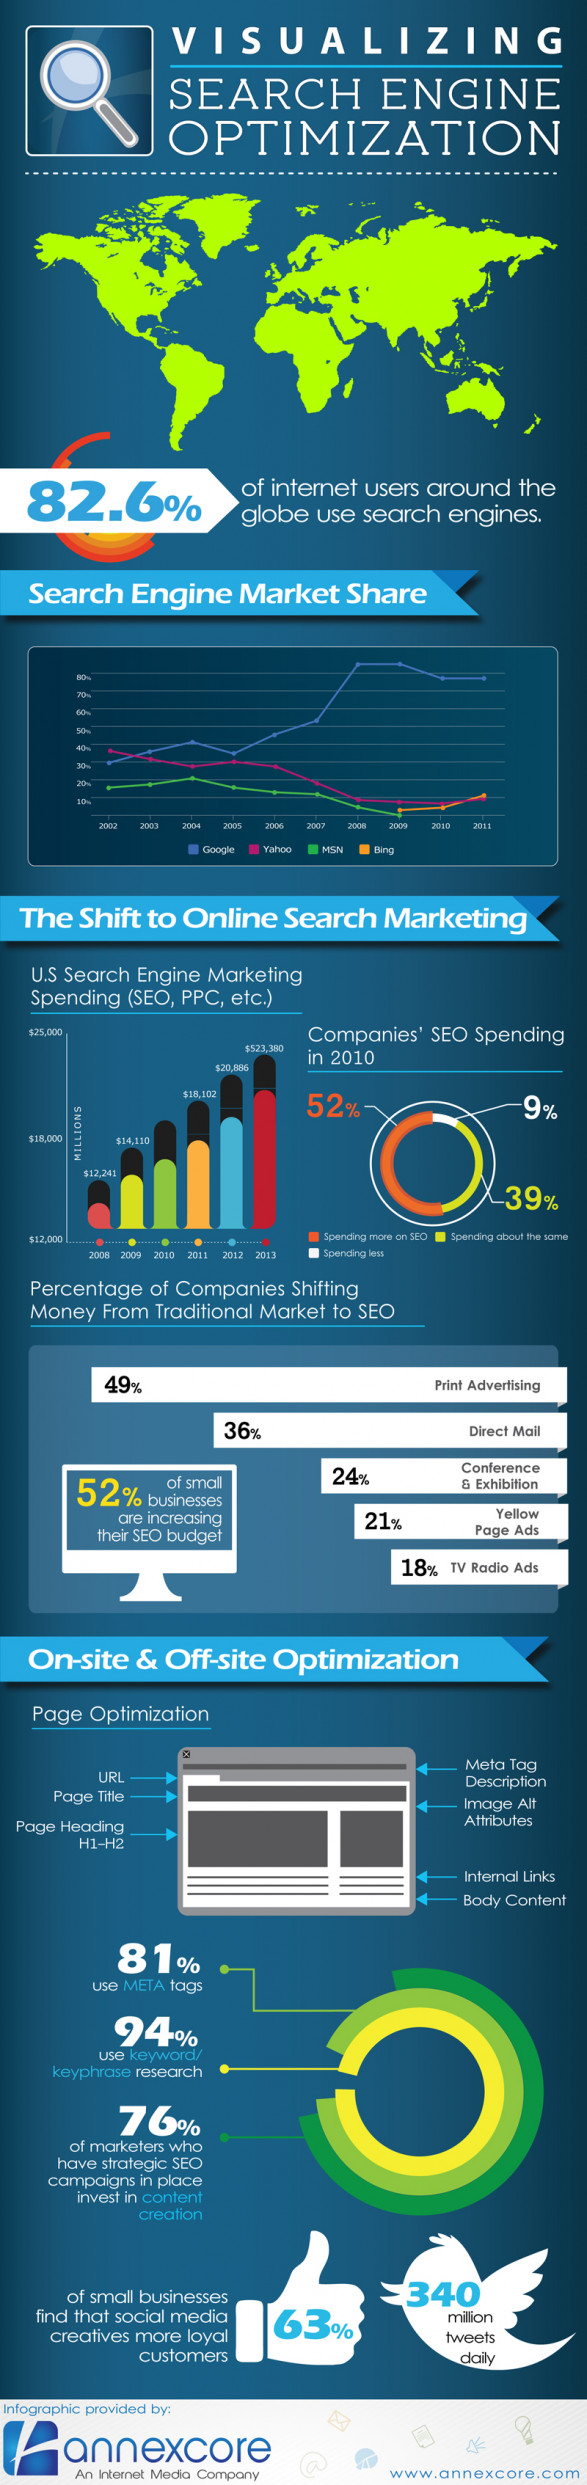 Visualizing SEO (Search Engine Optimization)